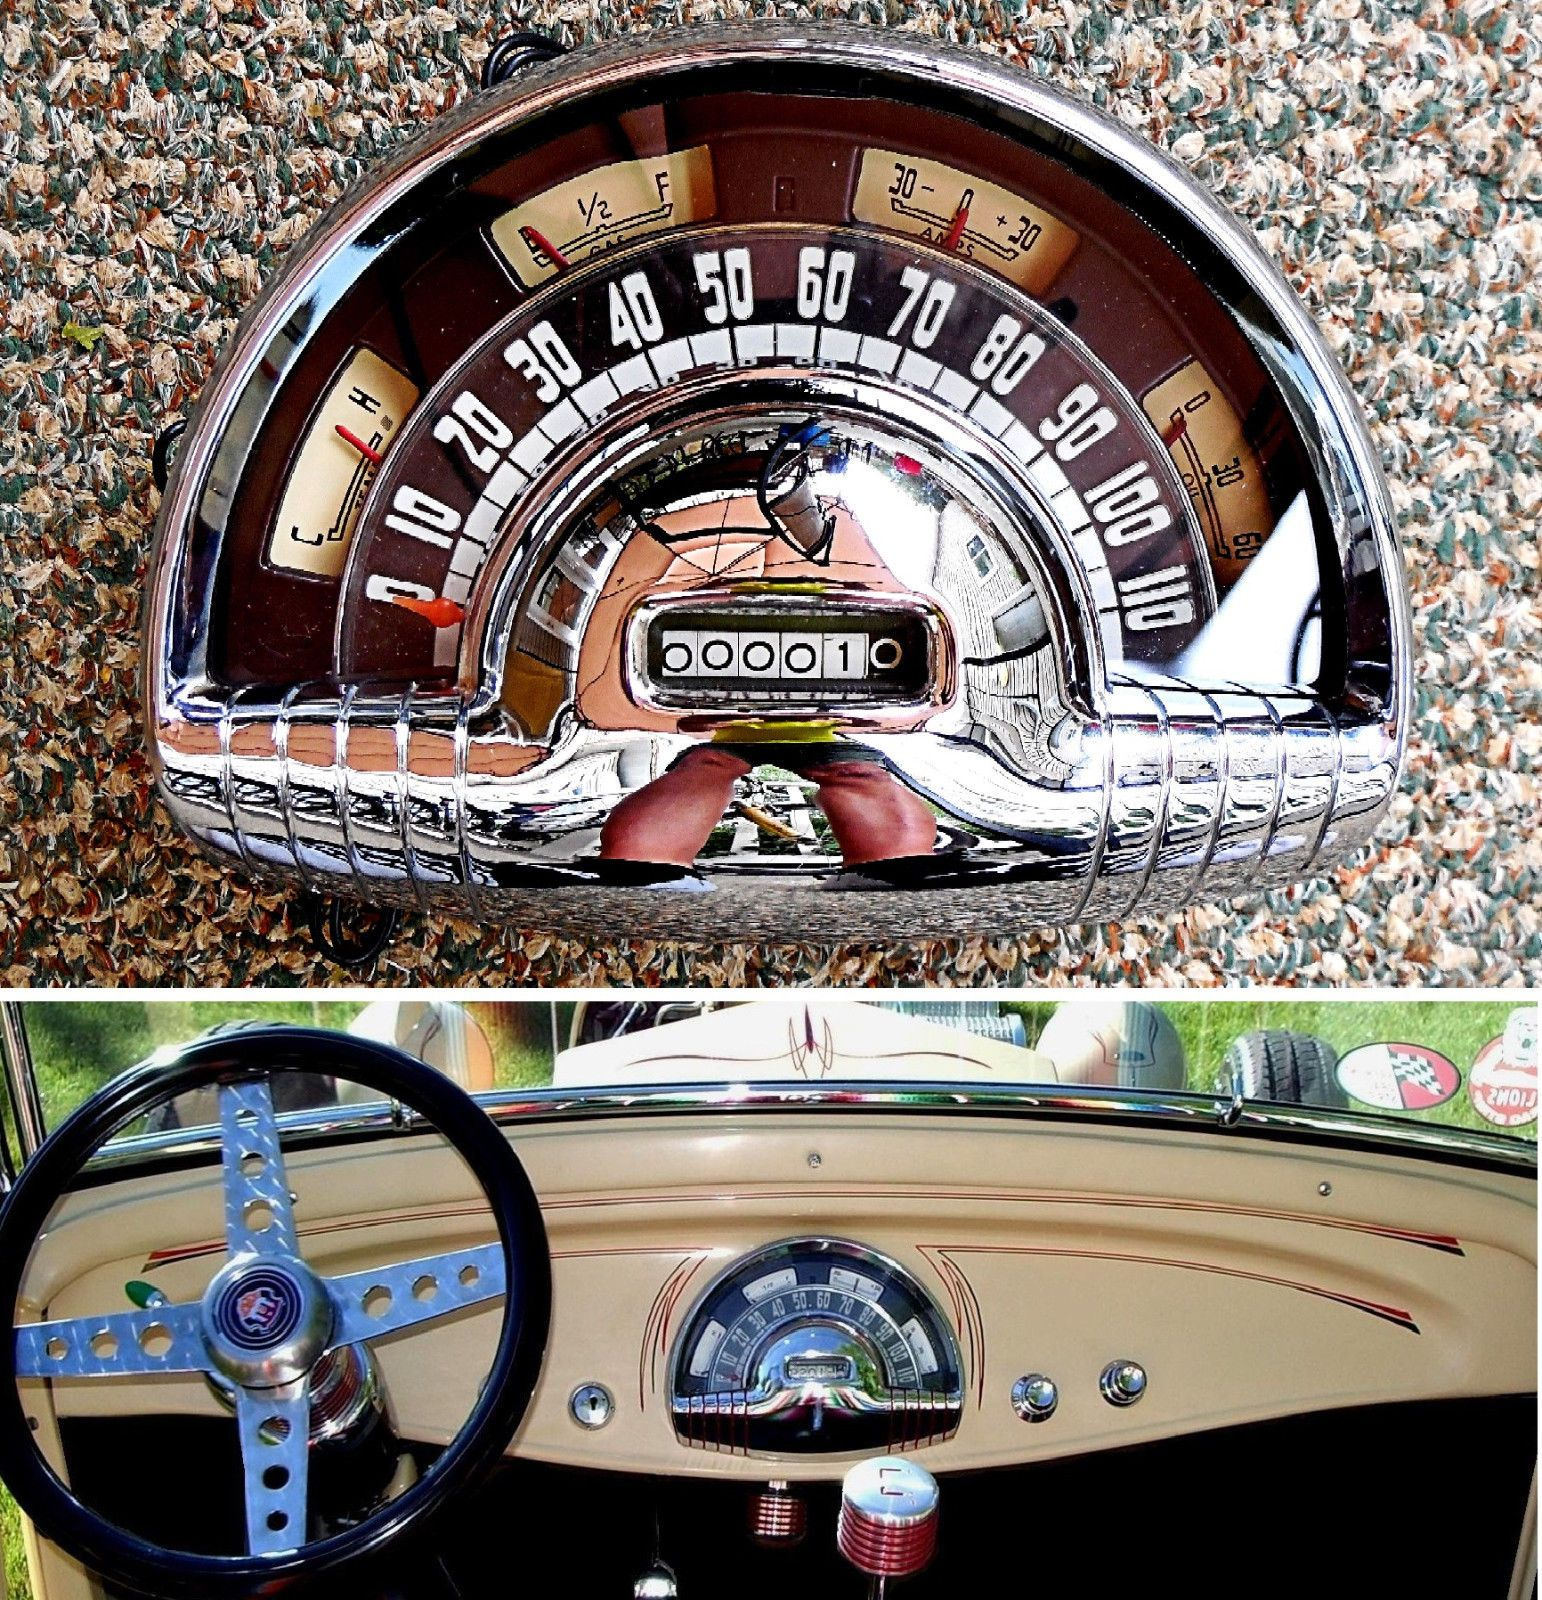 Beautiful 1949 1950 Oldsmobile Instrument Cluster 12v Rat Hot Rod 1932 Ford Hot Rods Oldsmobile Instrument Cluster